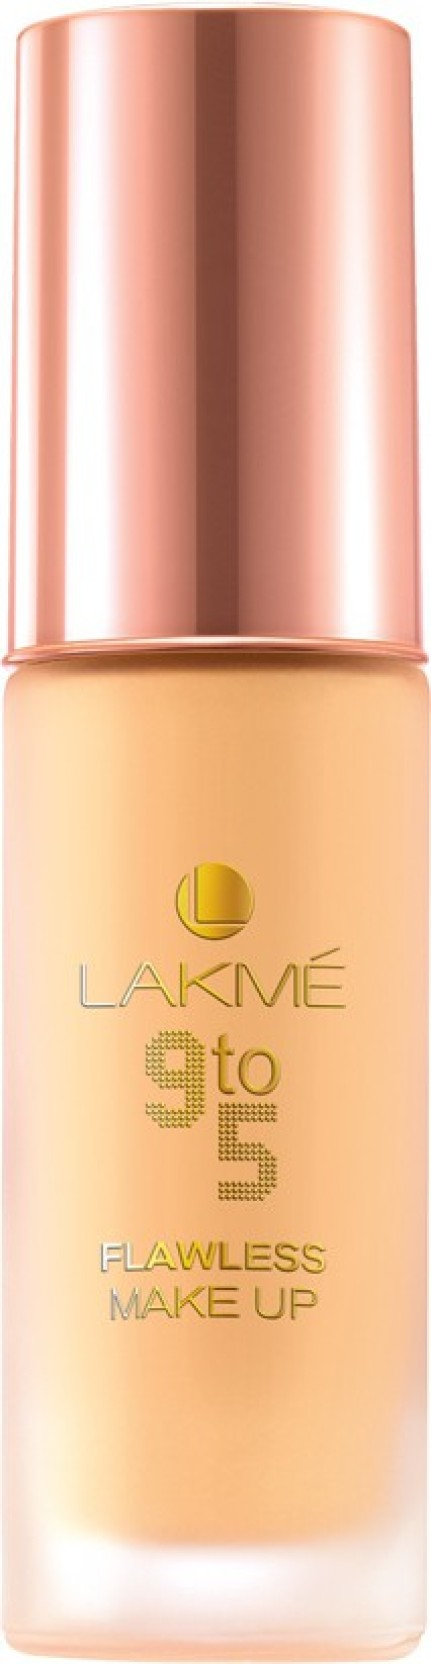 Lakme 9 to 5 Flawless Makeup Foundation. ADD TO CART